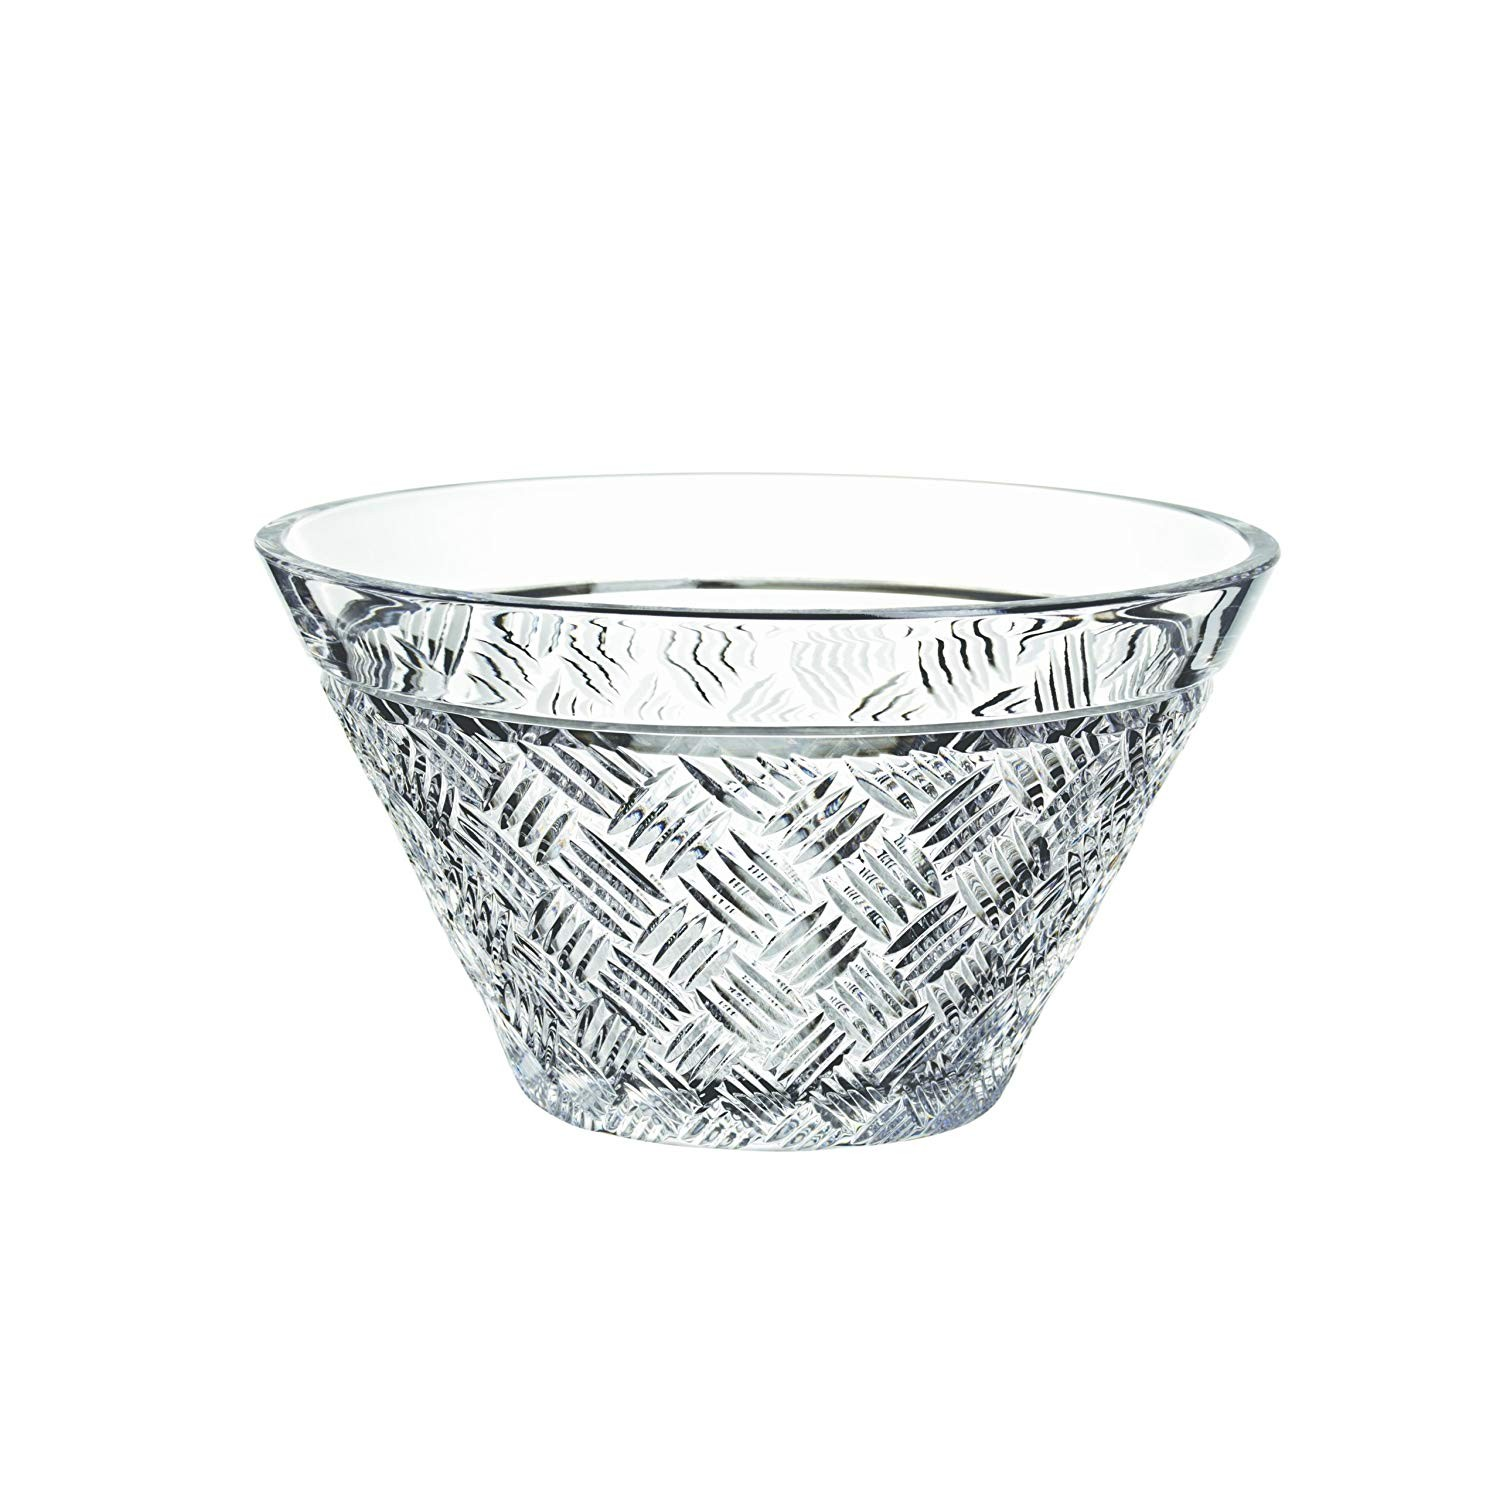 Waterford Crystal Marquis Versa Bowl 8-Inch